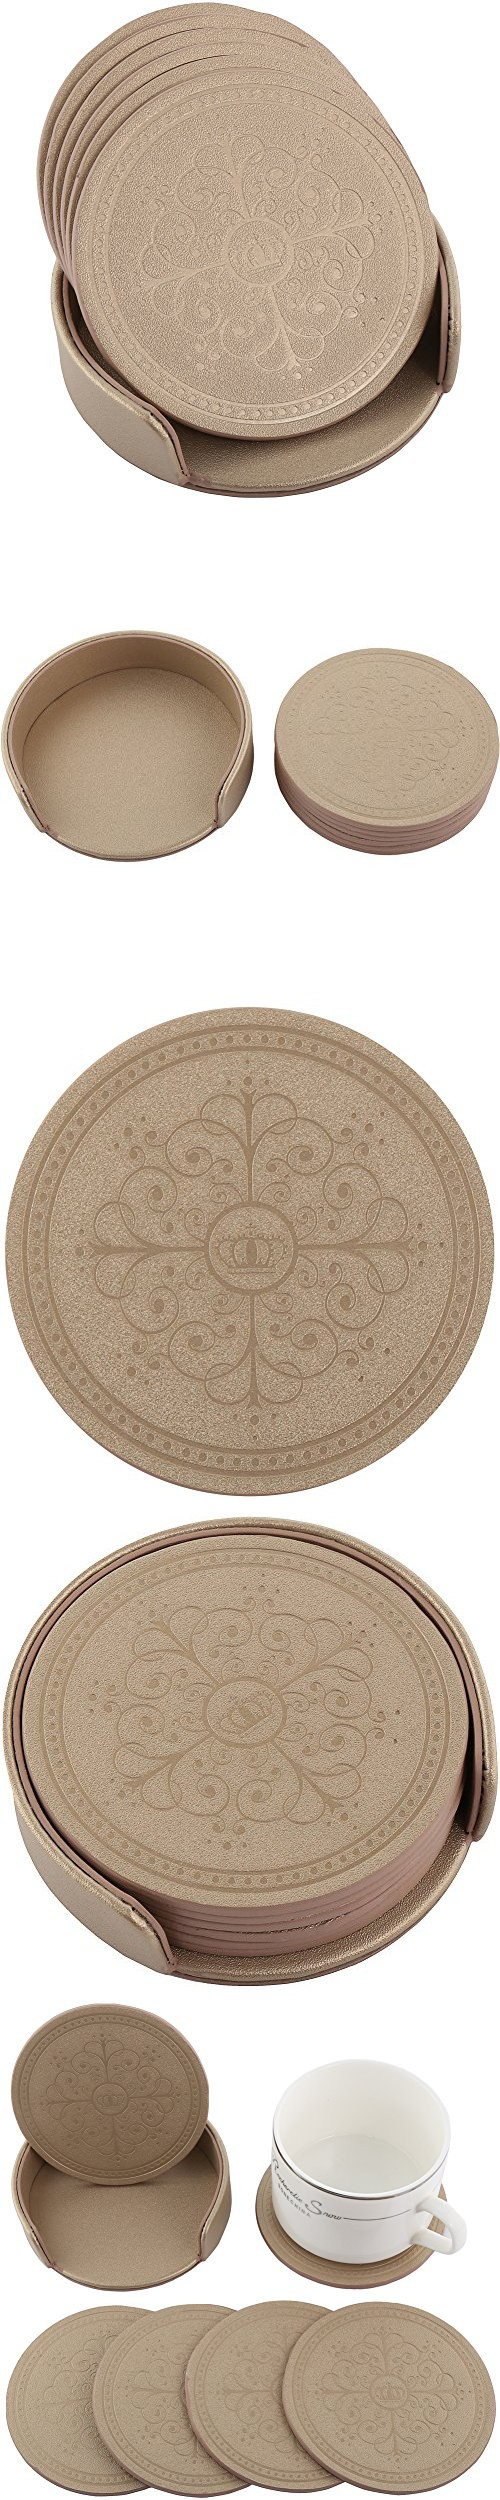 Happydavid Leather Round Placemats Cup Mat Set Of 6 With Coaster Holder For Fine Wine Beer Or Any Beverage Use On Bars Or Fine Furniture In Your Kitchen Gold Ro